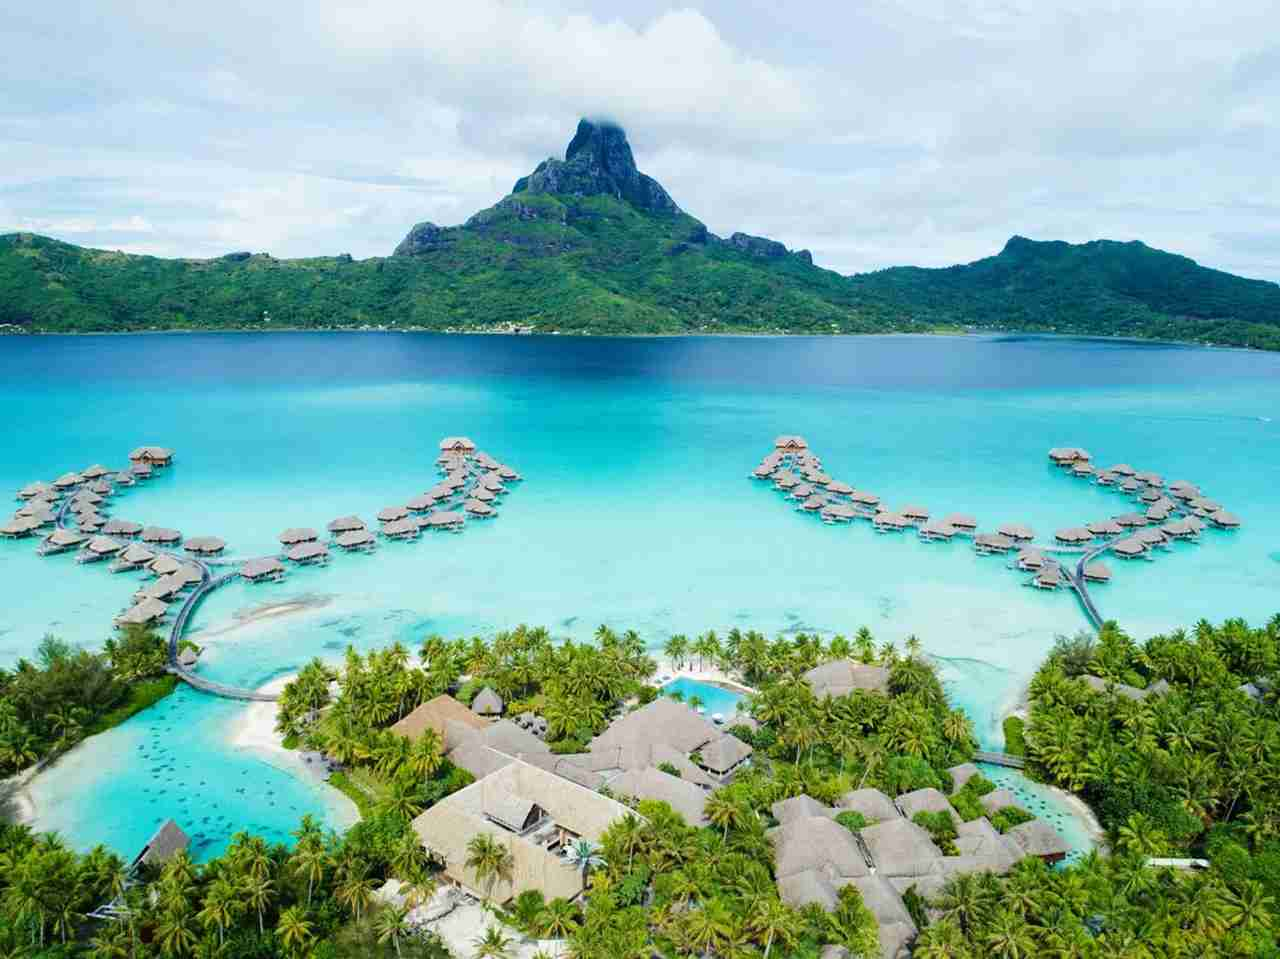 Redeem your IHG points for a free night at the stunning InterContinental Bora Bora (Photo courtesy InterContinental Thalasso Bora Bora)